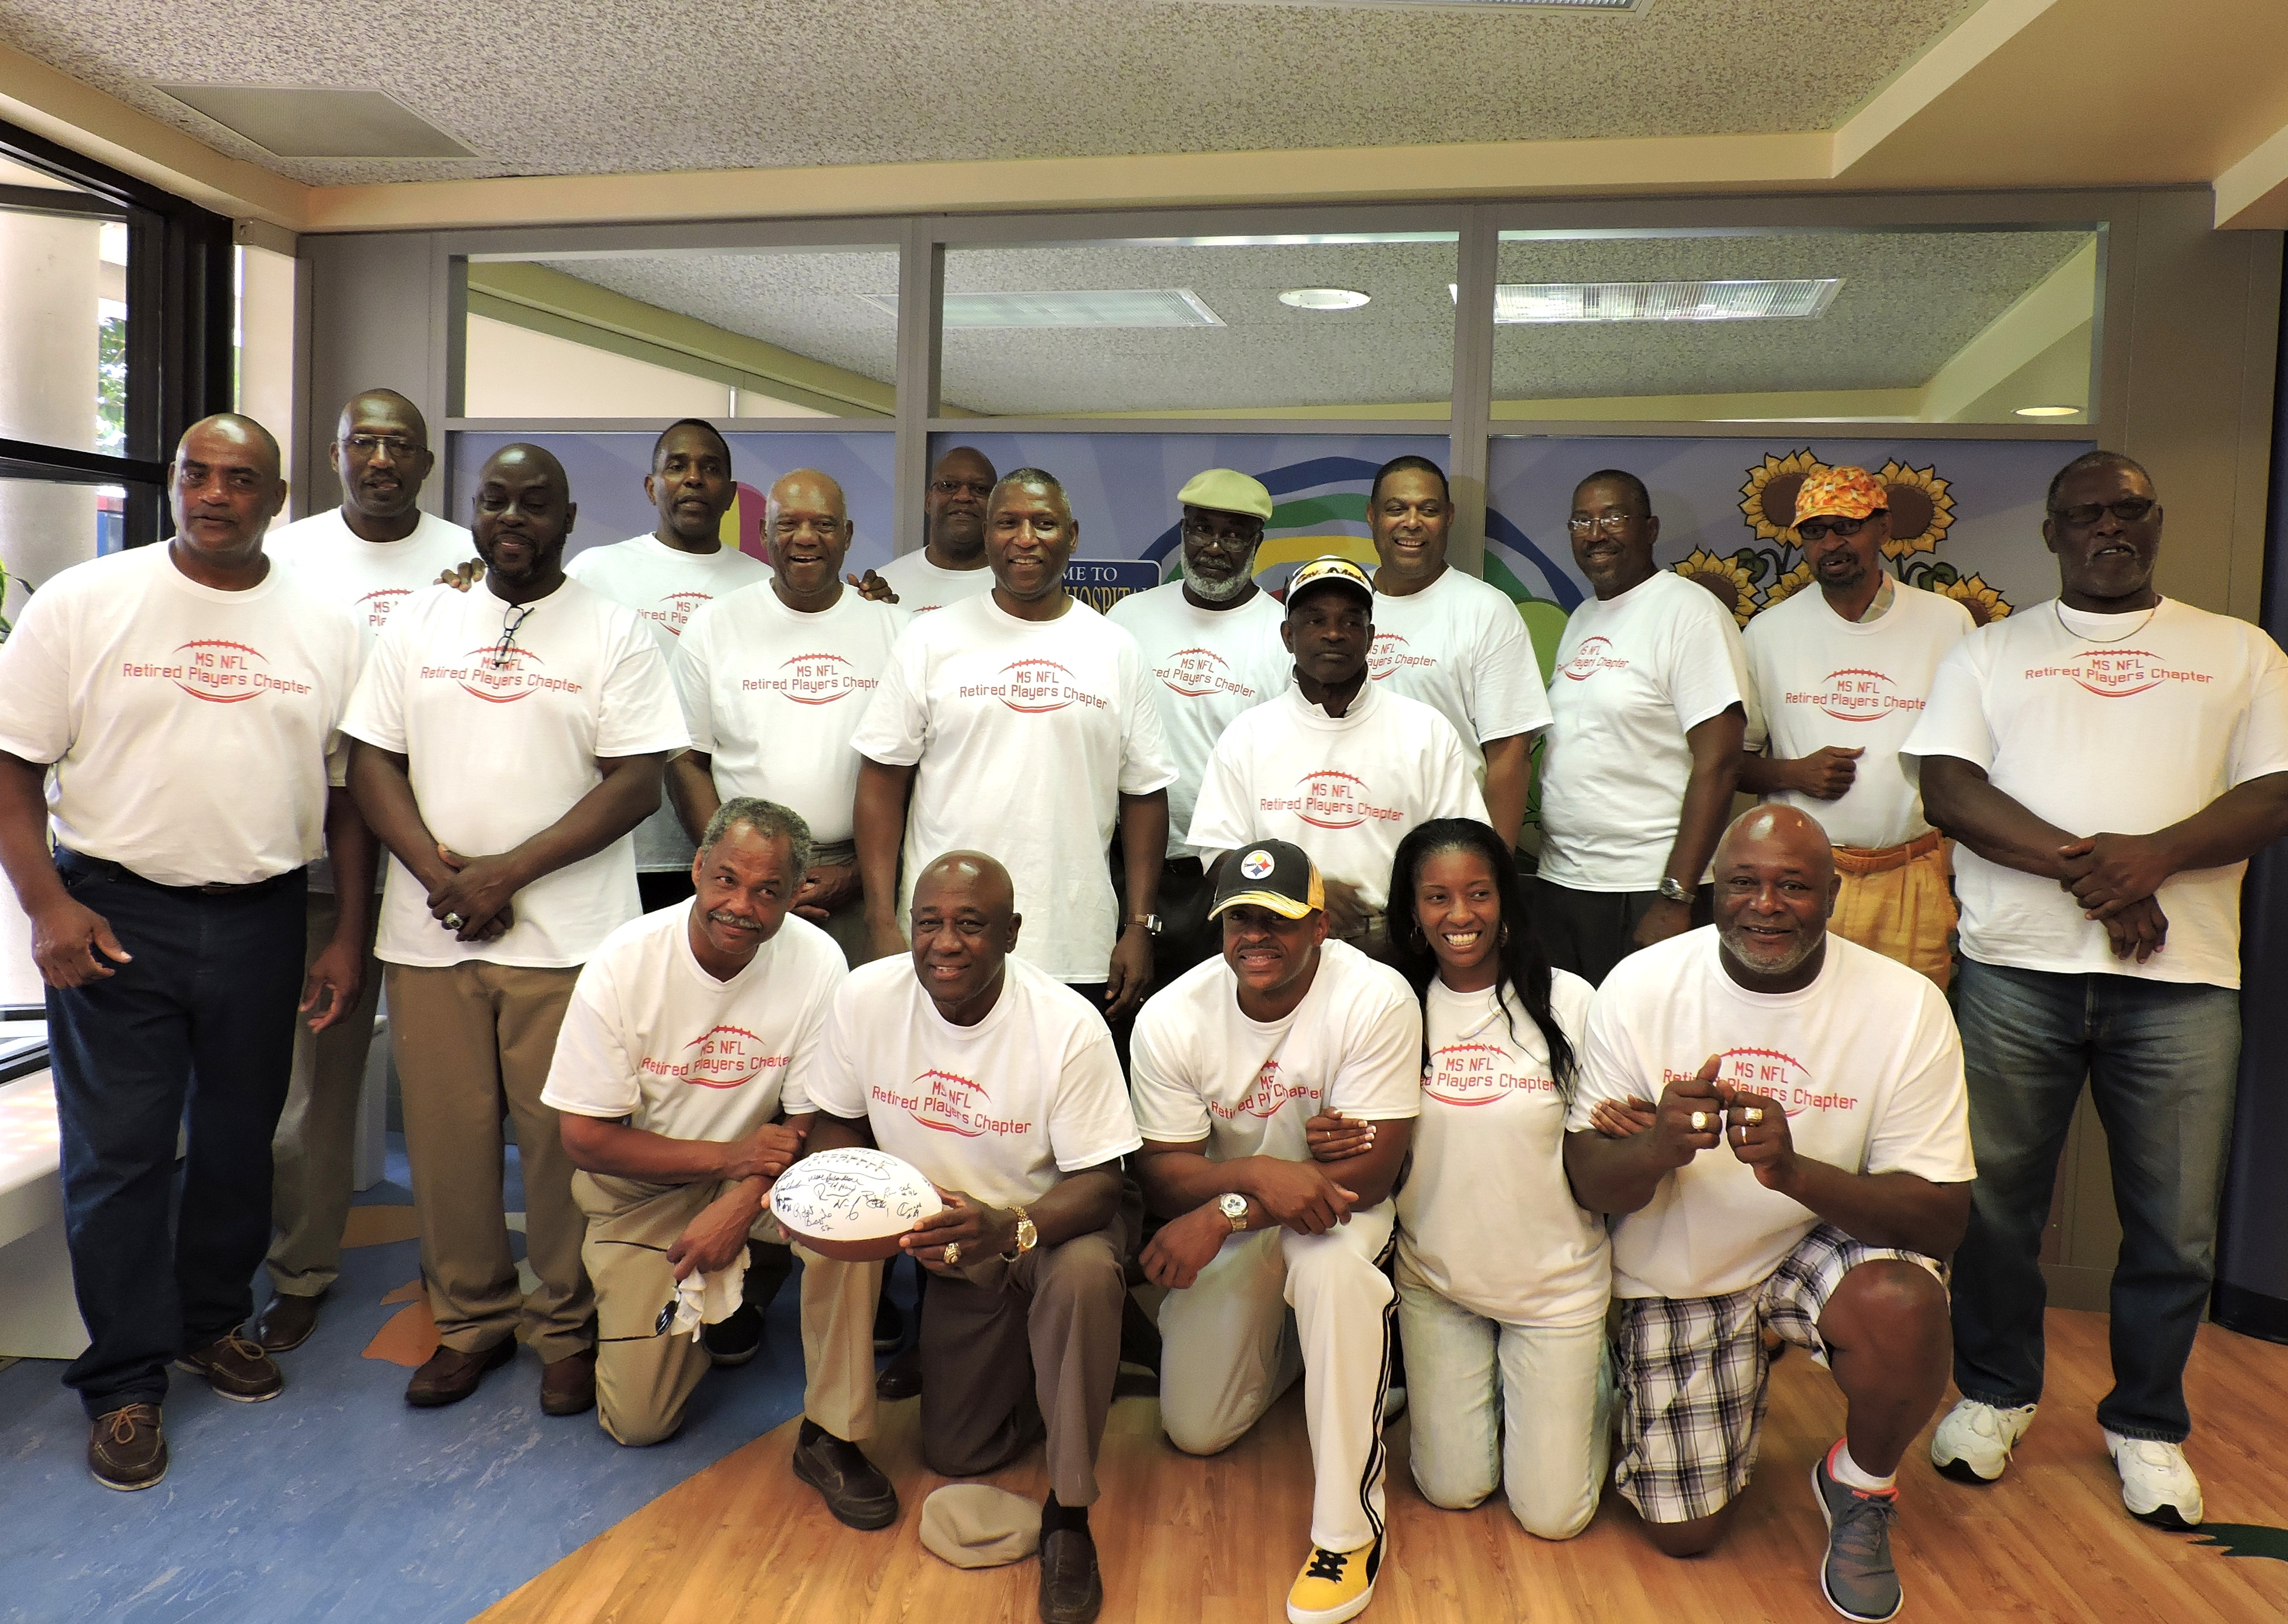 Members of the MS NFL Retired Players Chapter at Batson Children's Hospital, July 22, 2015 PHOTOS BY STEPHANIE R. JONES